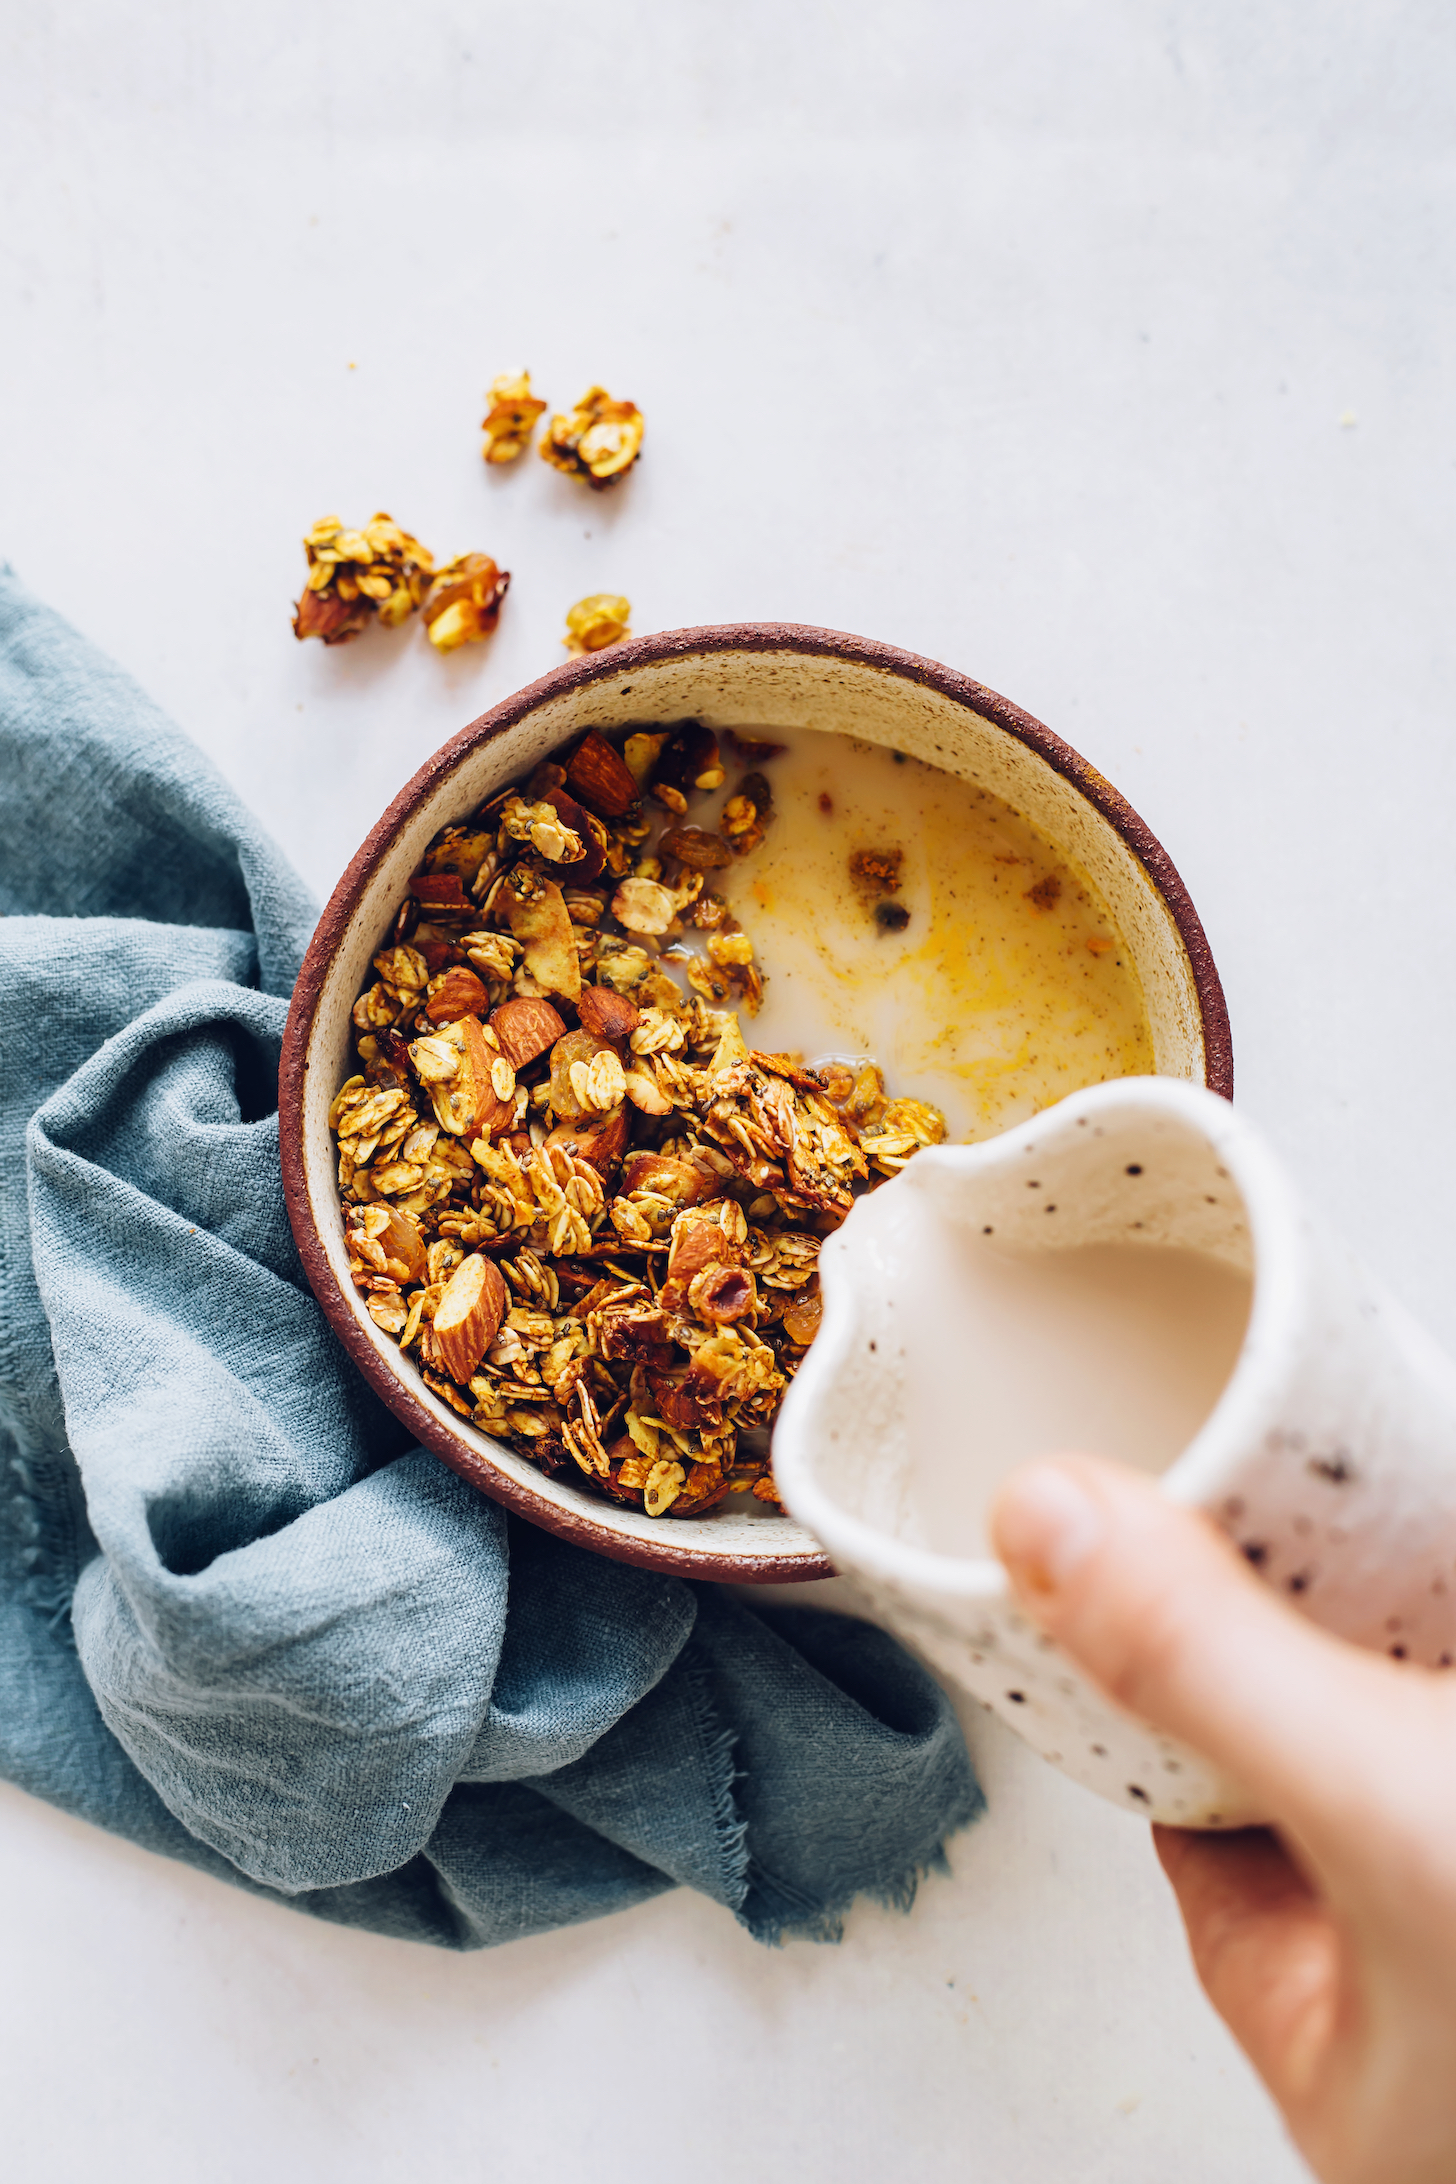 Pouring dairy-free milk into a bowl of golden milk granola